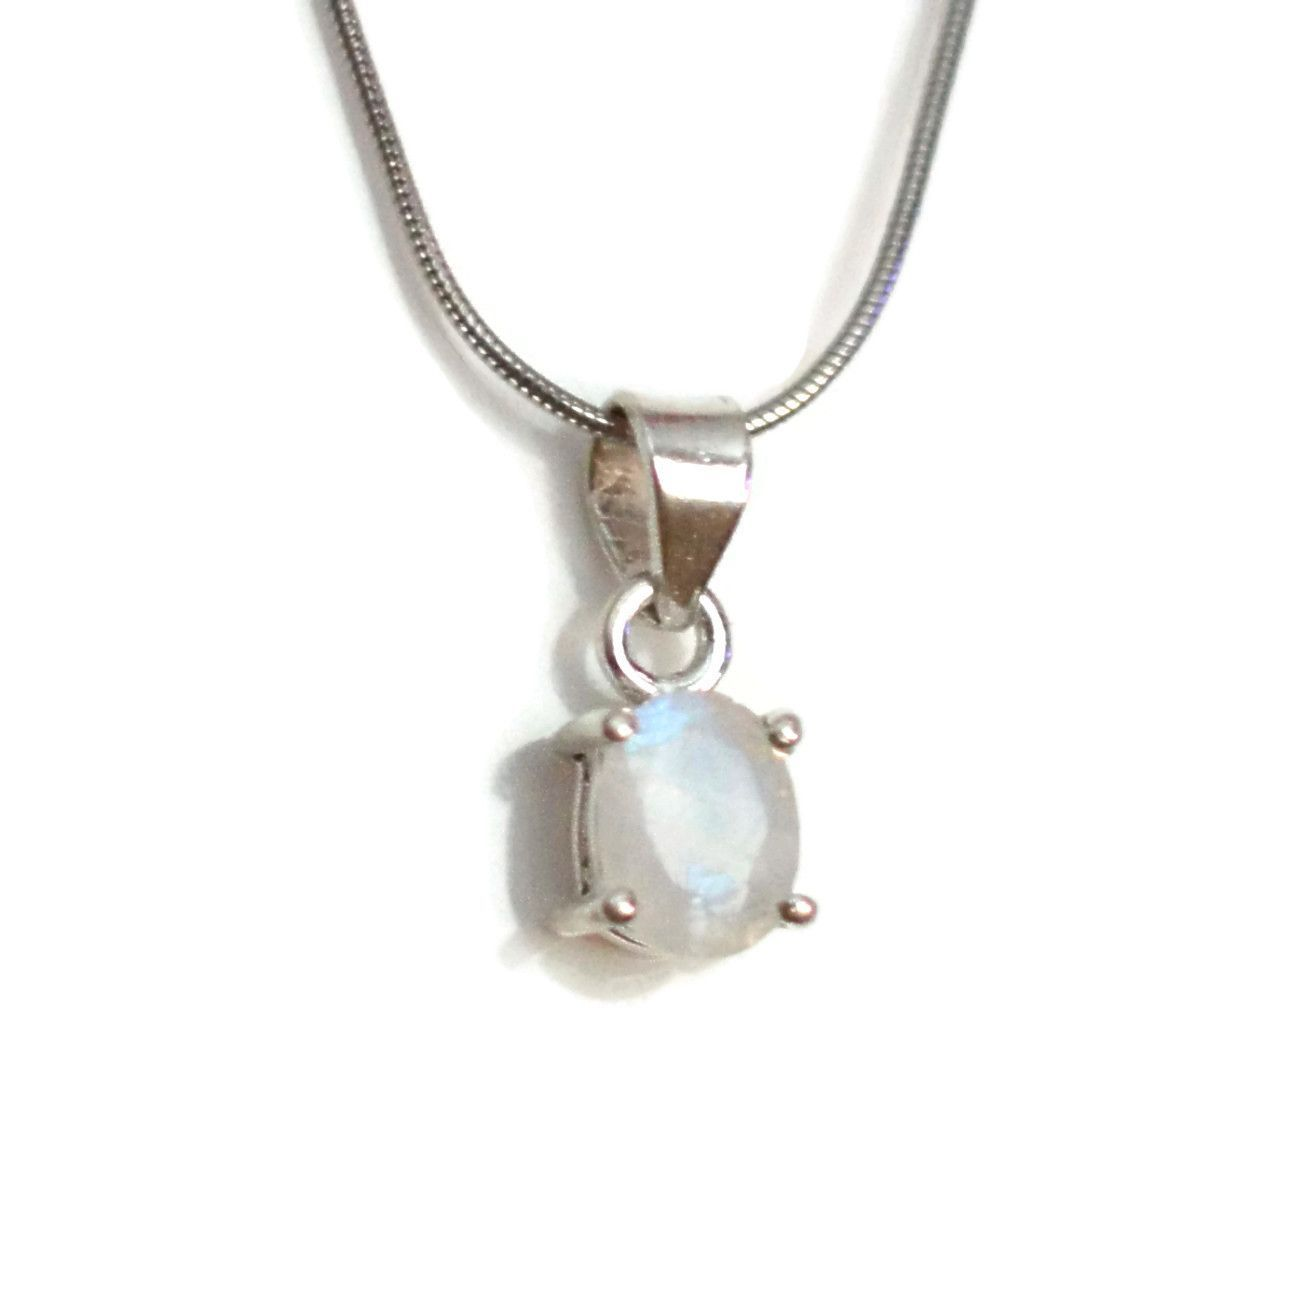 Small rainbow moonstone sterling silver oval pendant necklace